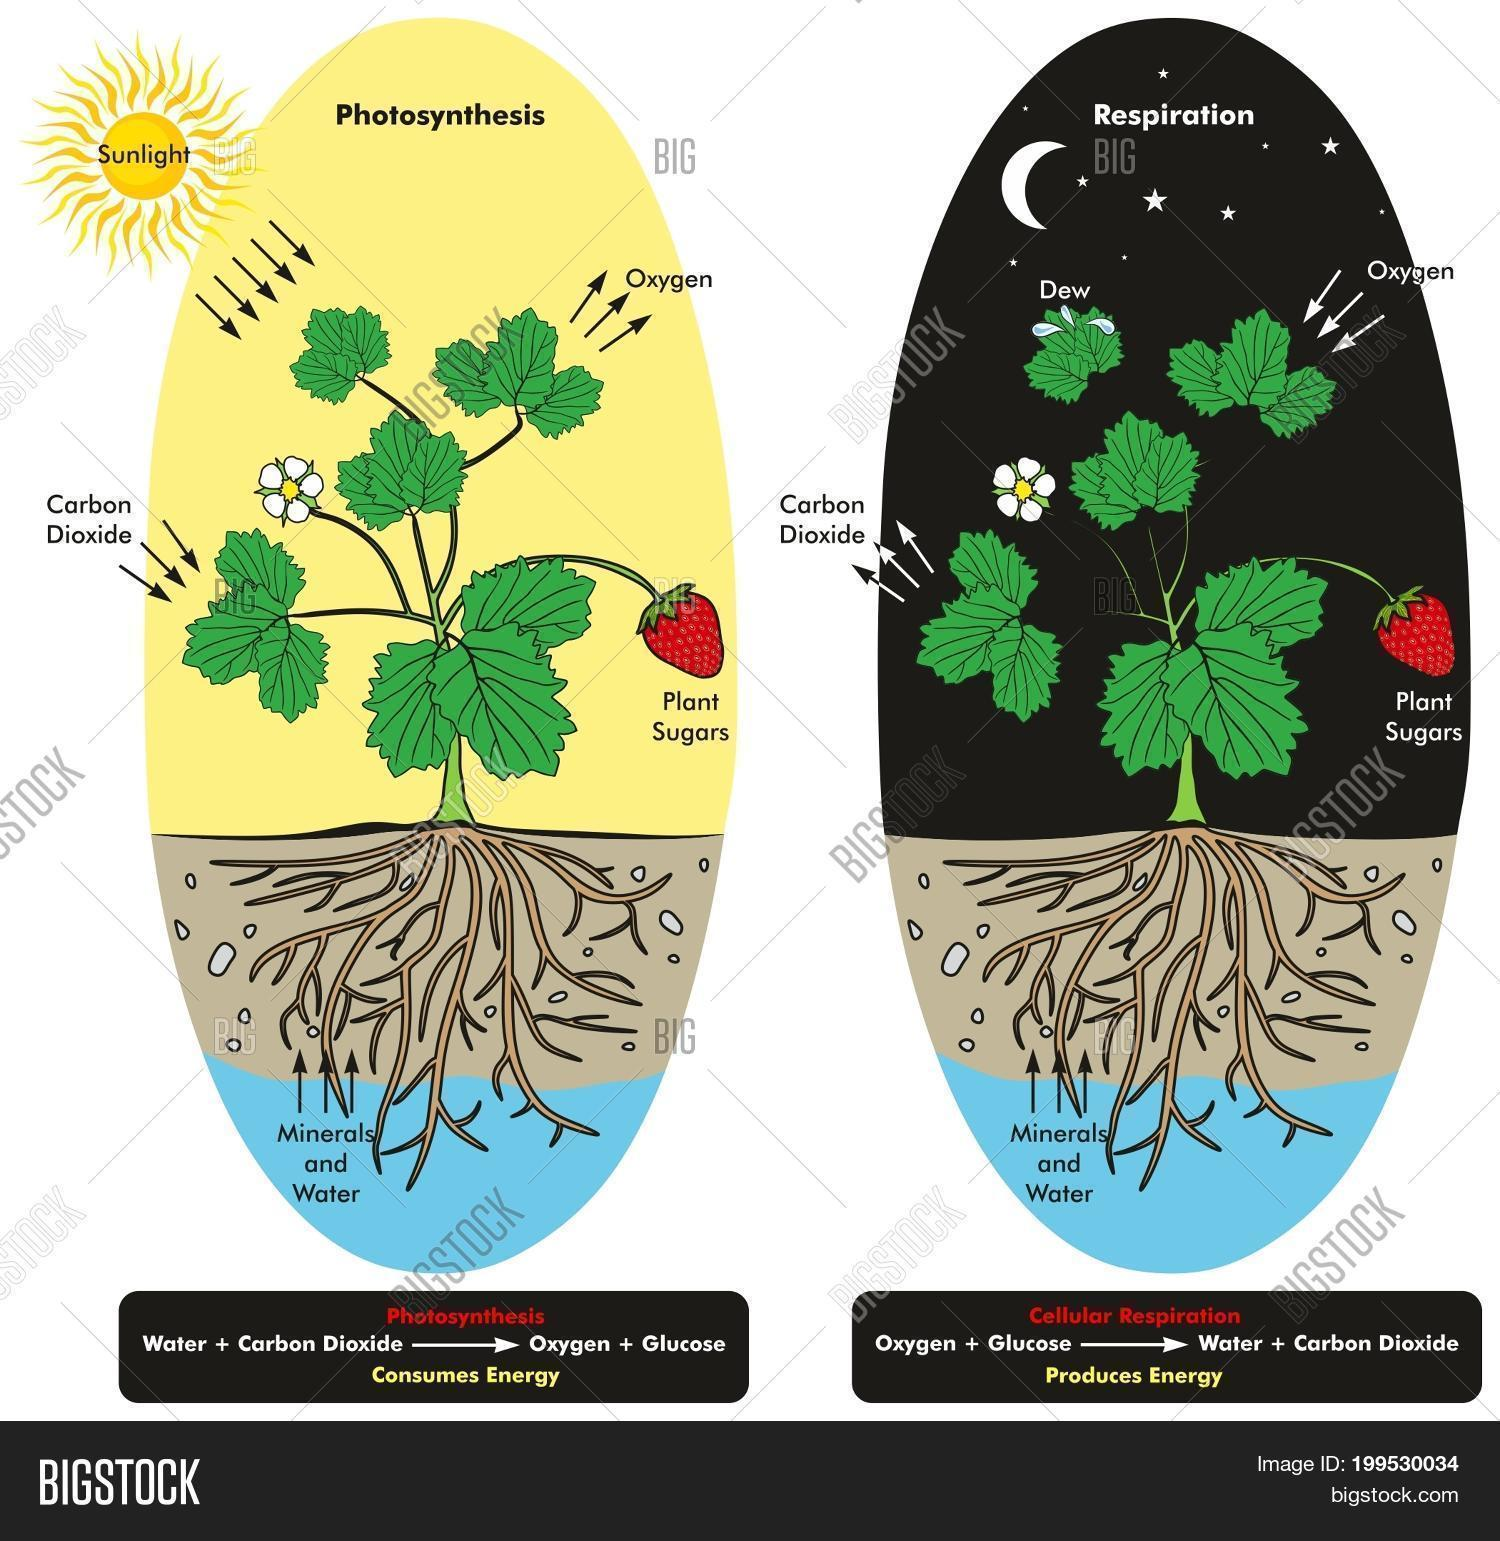 Photosynthesis cellular respiration image photo bigstock photosynthesis and cellular respiration process of plant during day and night time infographic diagram showing comparison ccuart Gallery